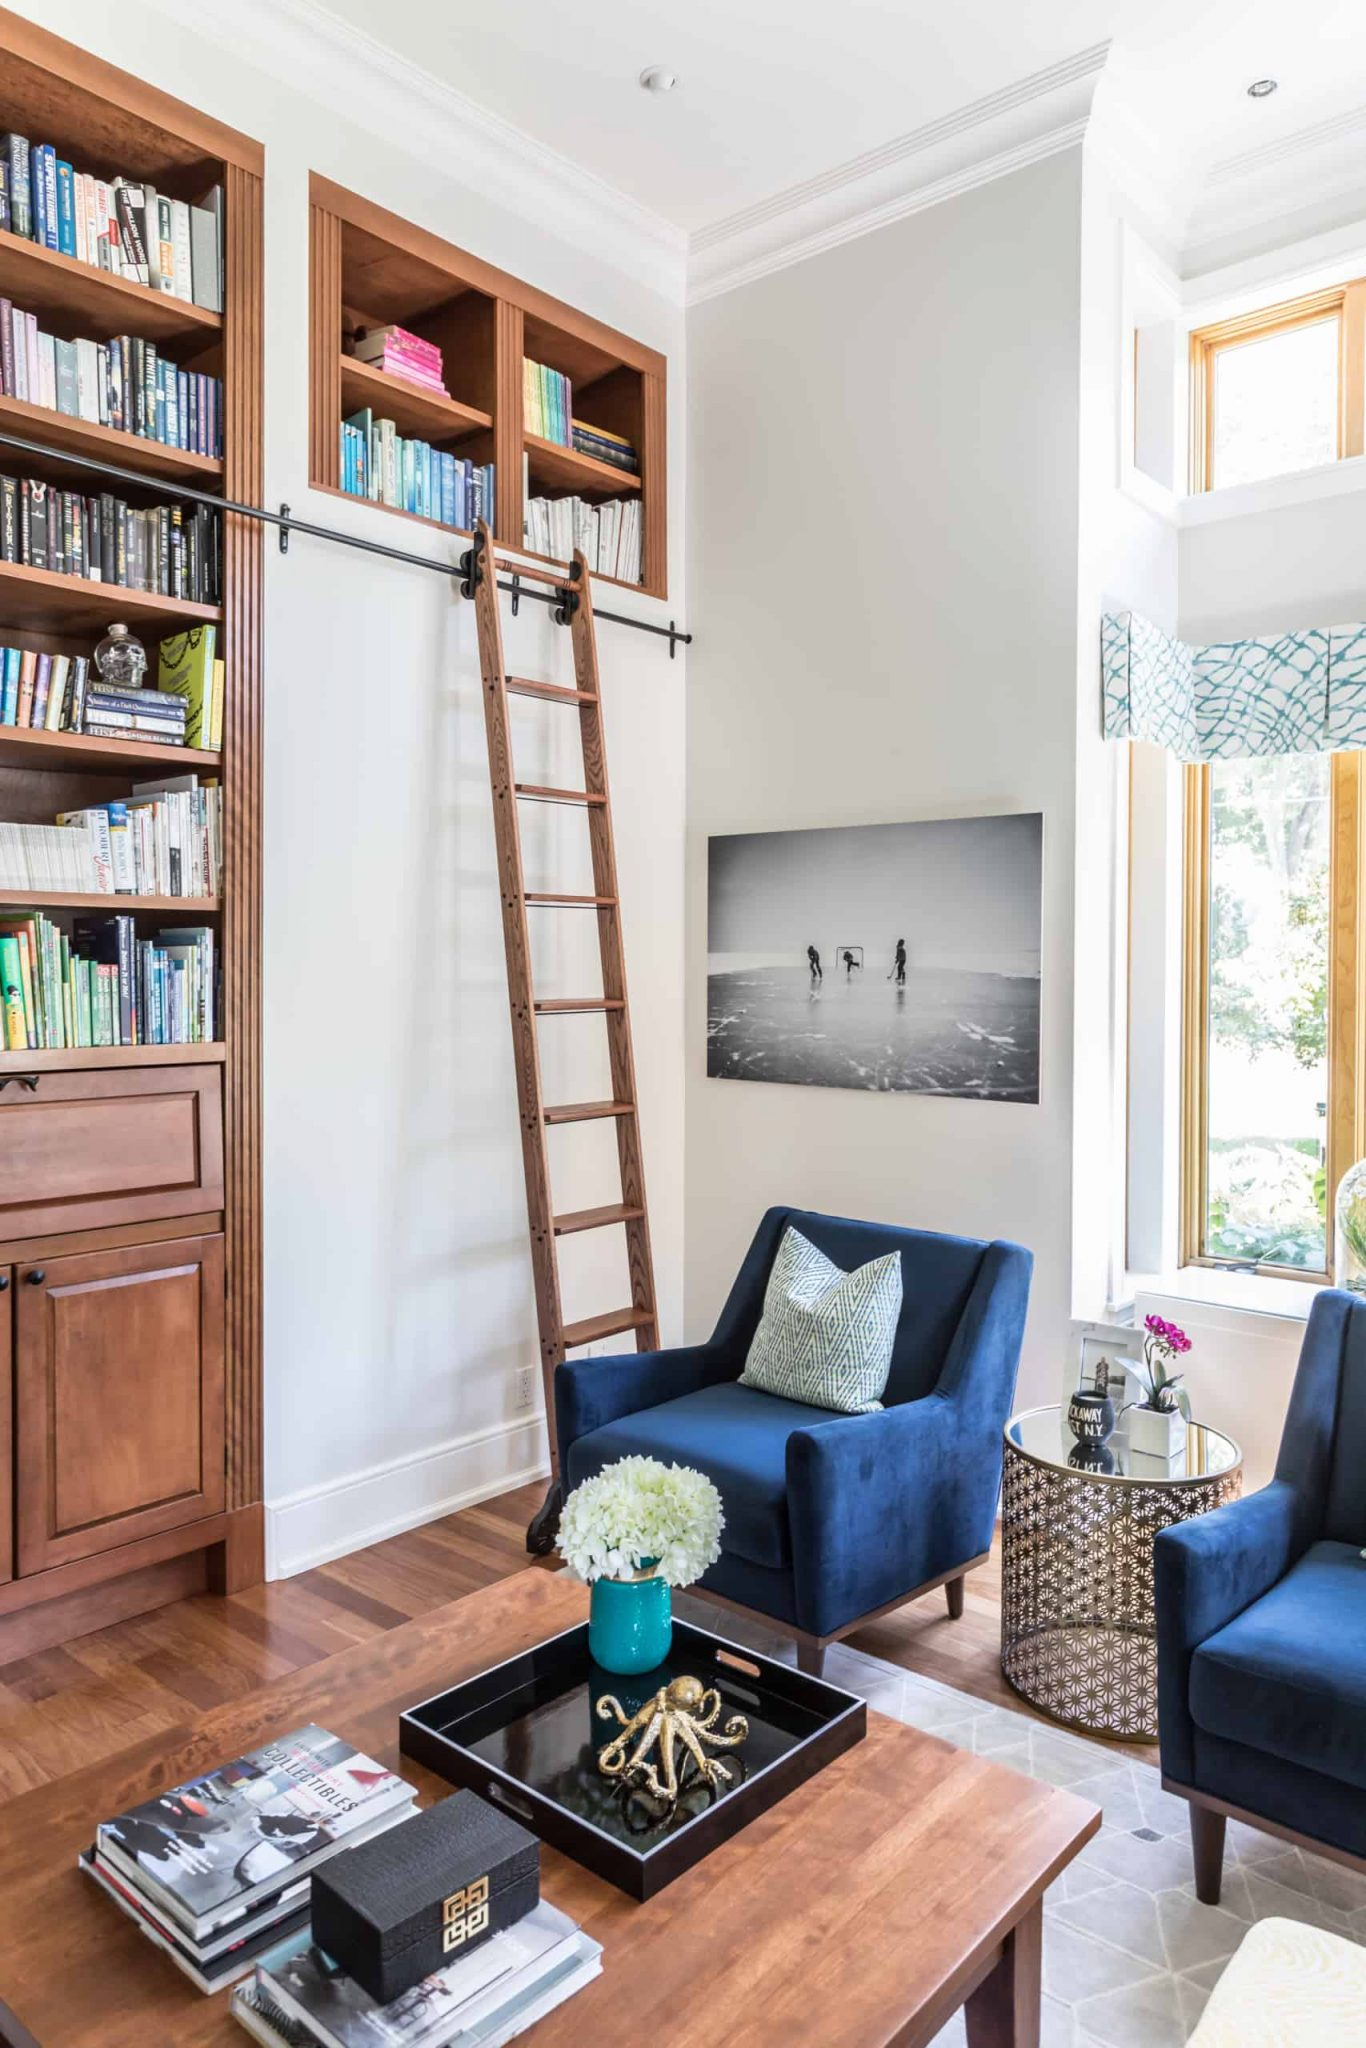 Tall living room with a ladder to reach the top of bookshelves